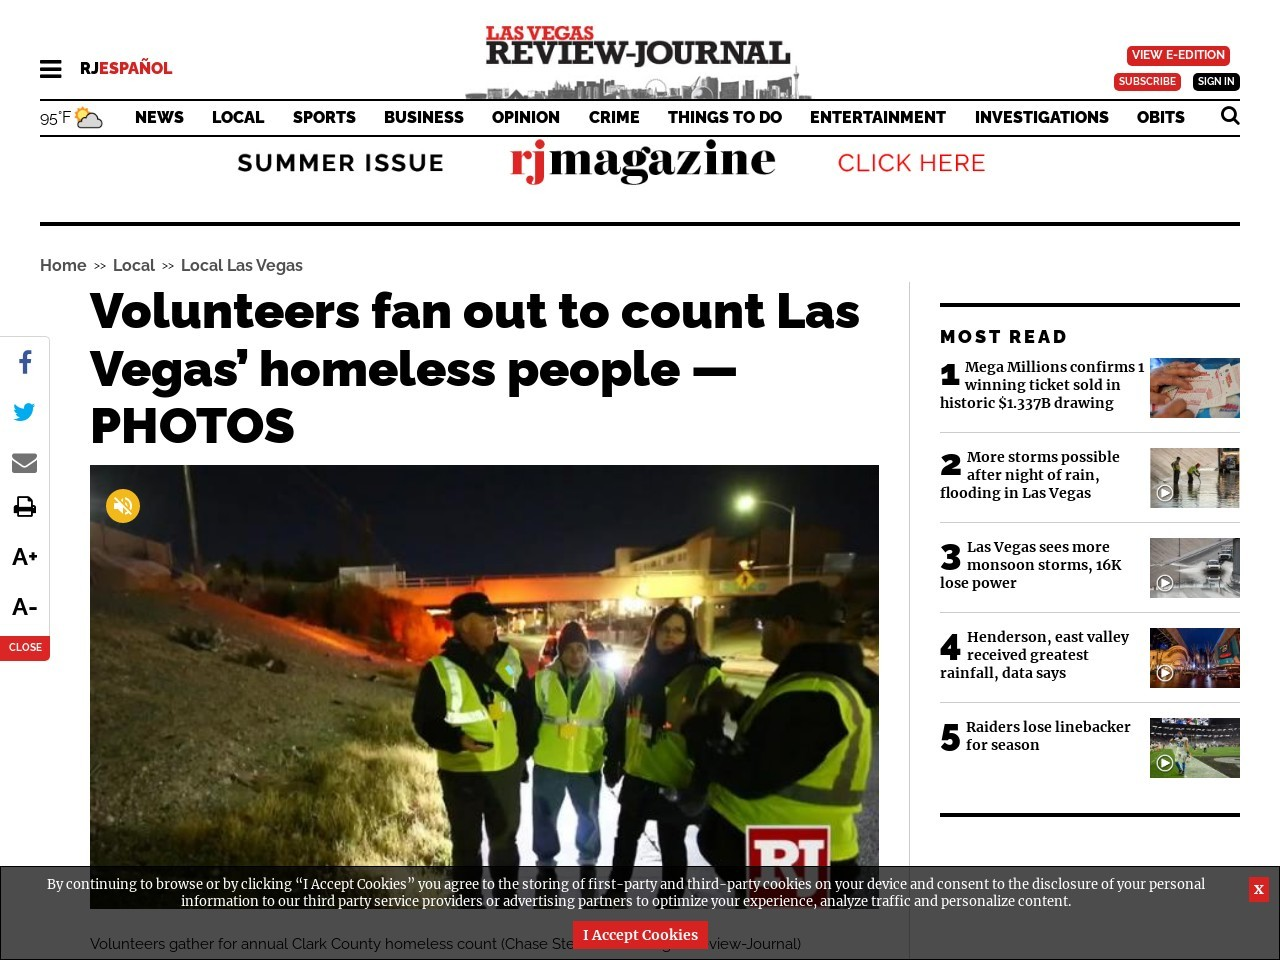 Volunteers fan out across Las Vegas Valley for homeless count